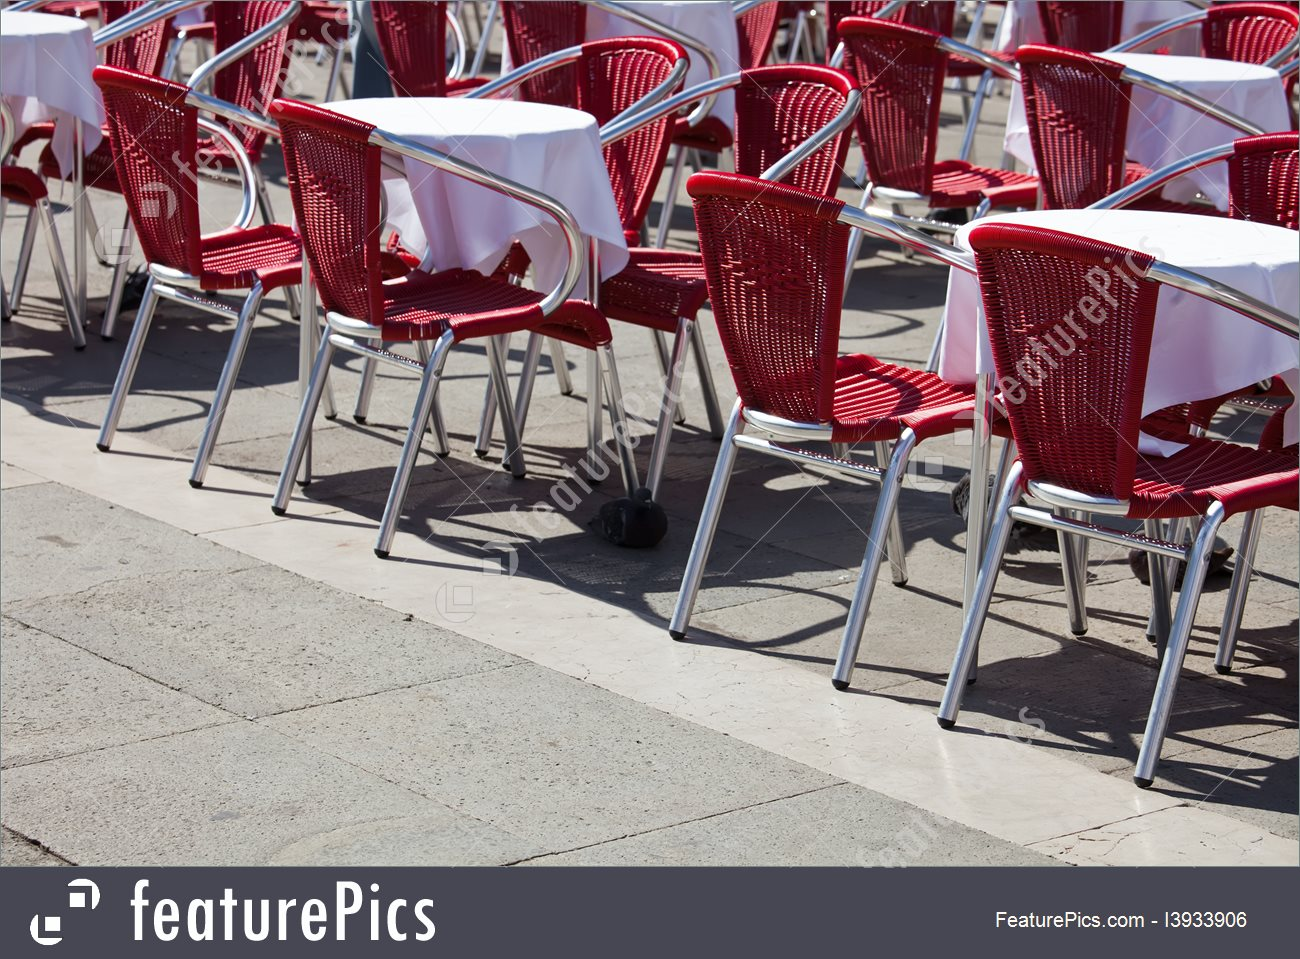 Furniture : Cute Cafe Tables And Chairs Standing On Saint Mark.